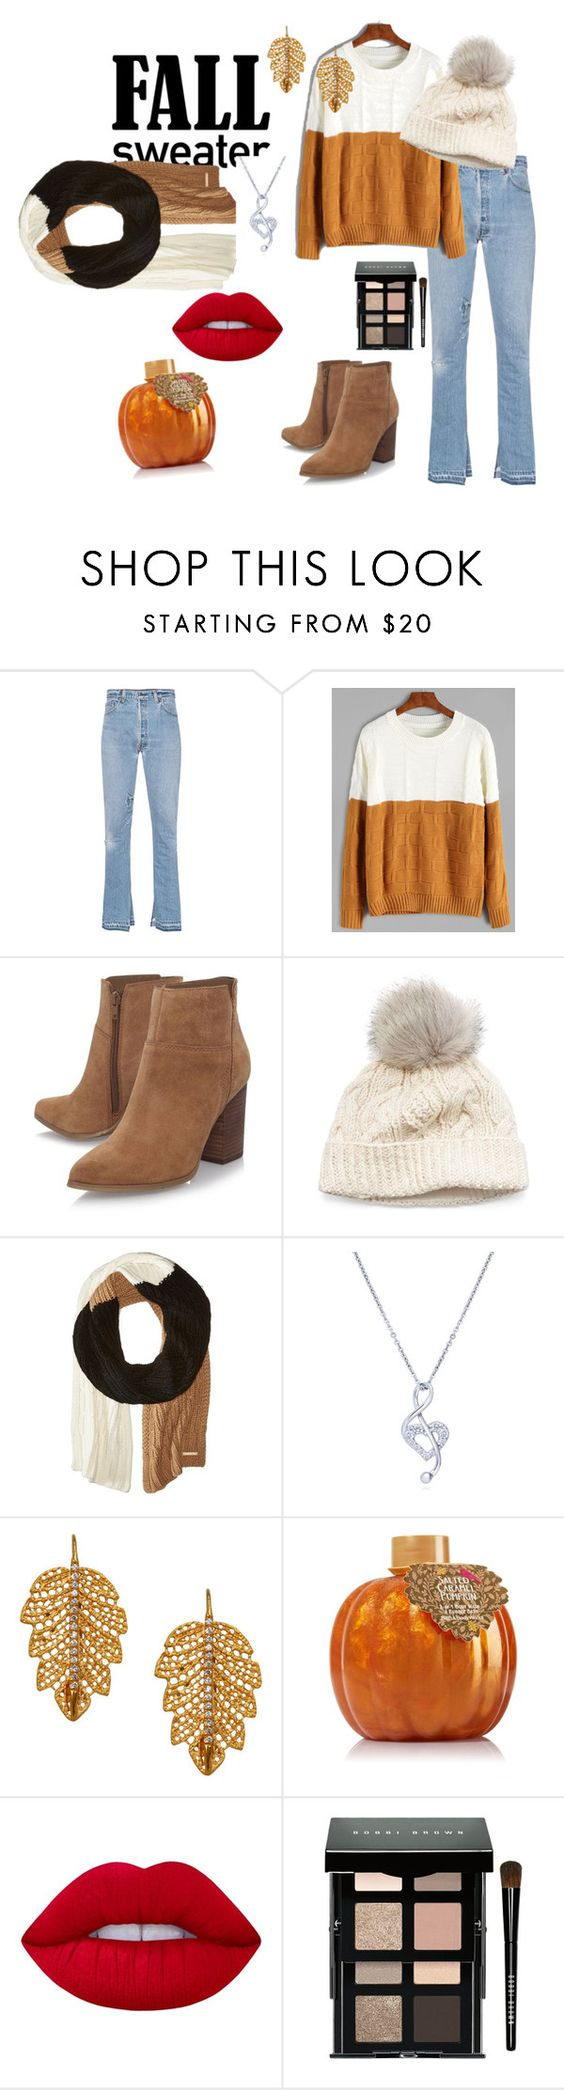 """""""sweaters are better"""" by grizzlygril ❤ liked on Polyvore featuring RE/DONE, Nine West, SIJJL, MICHAEL Michael Kors, BERRICLE, Marika, Lime Crime and Bobbi Brown Cosmetics"""